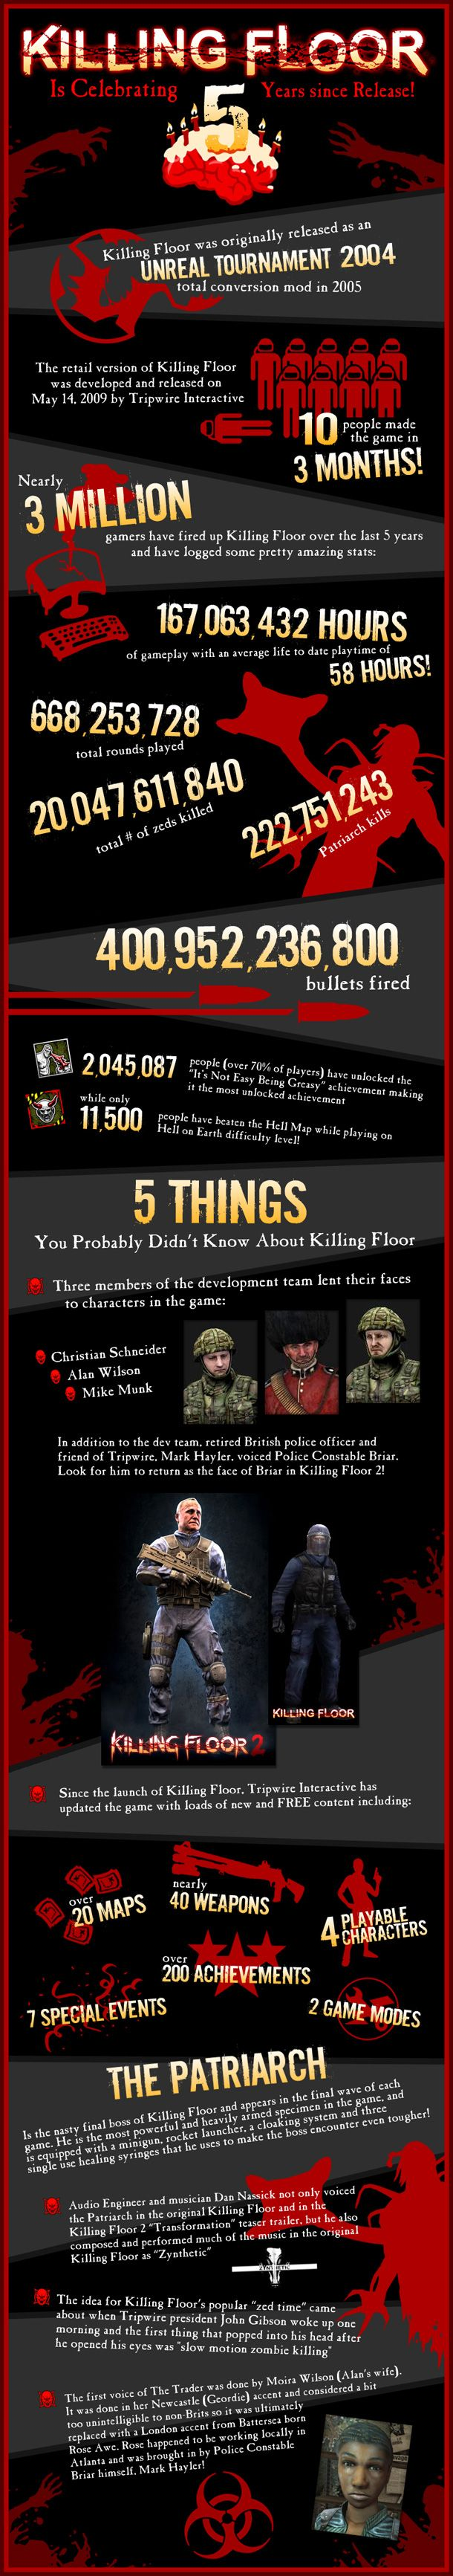 Killing Floor Infographic Details The Game's Impressive Stats - News - www.GameInformer.com